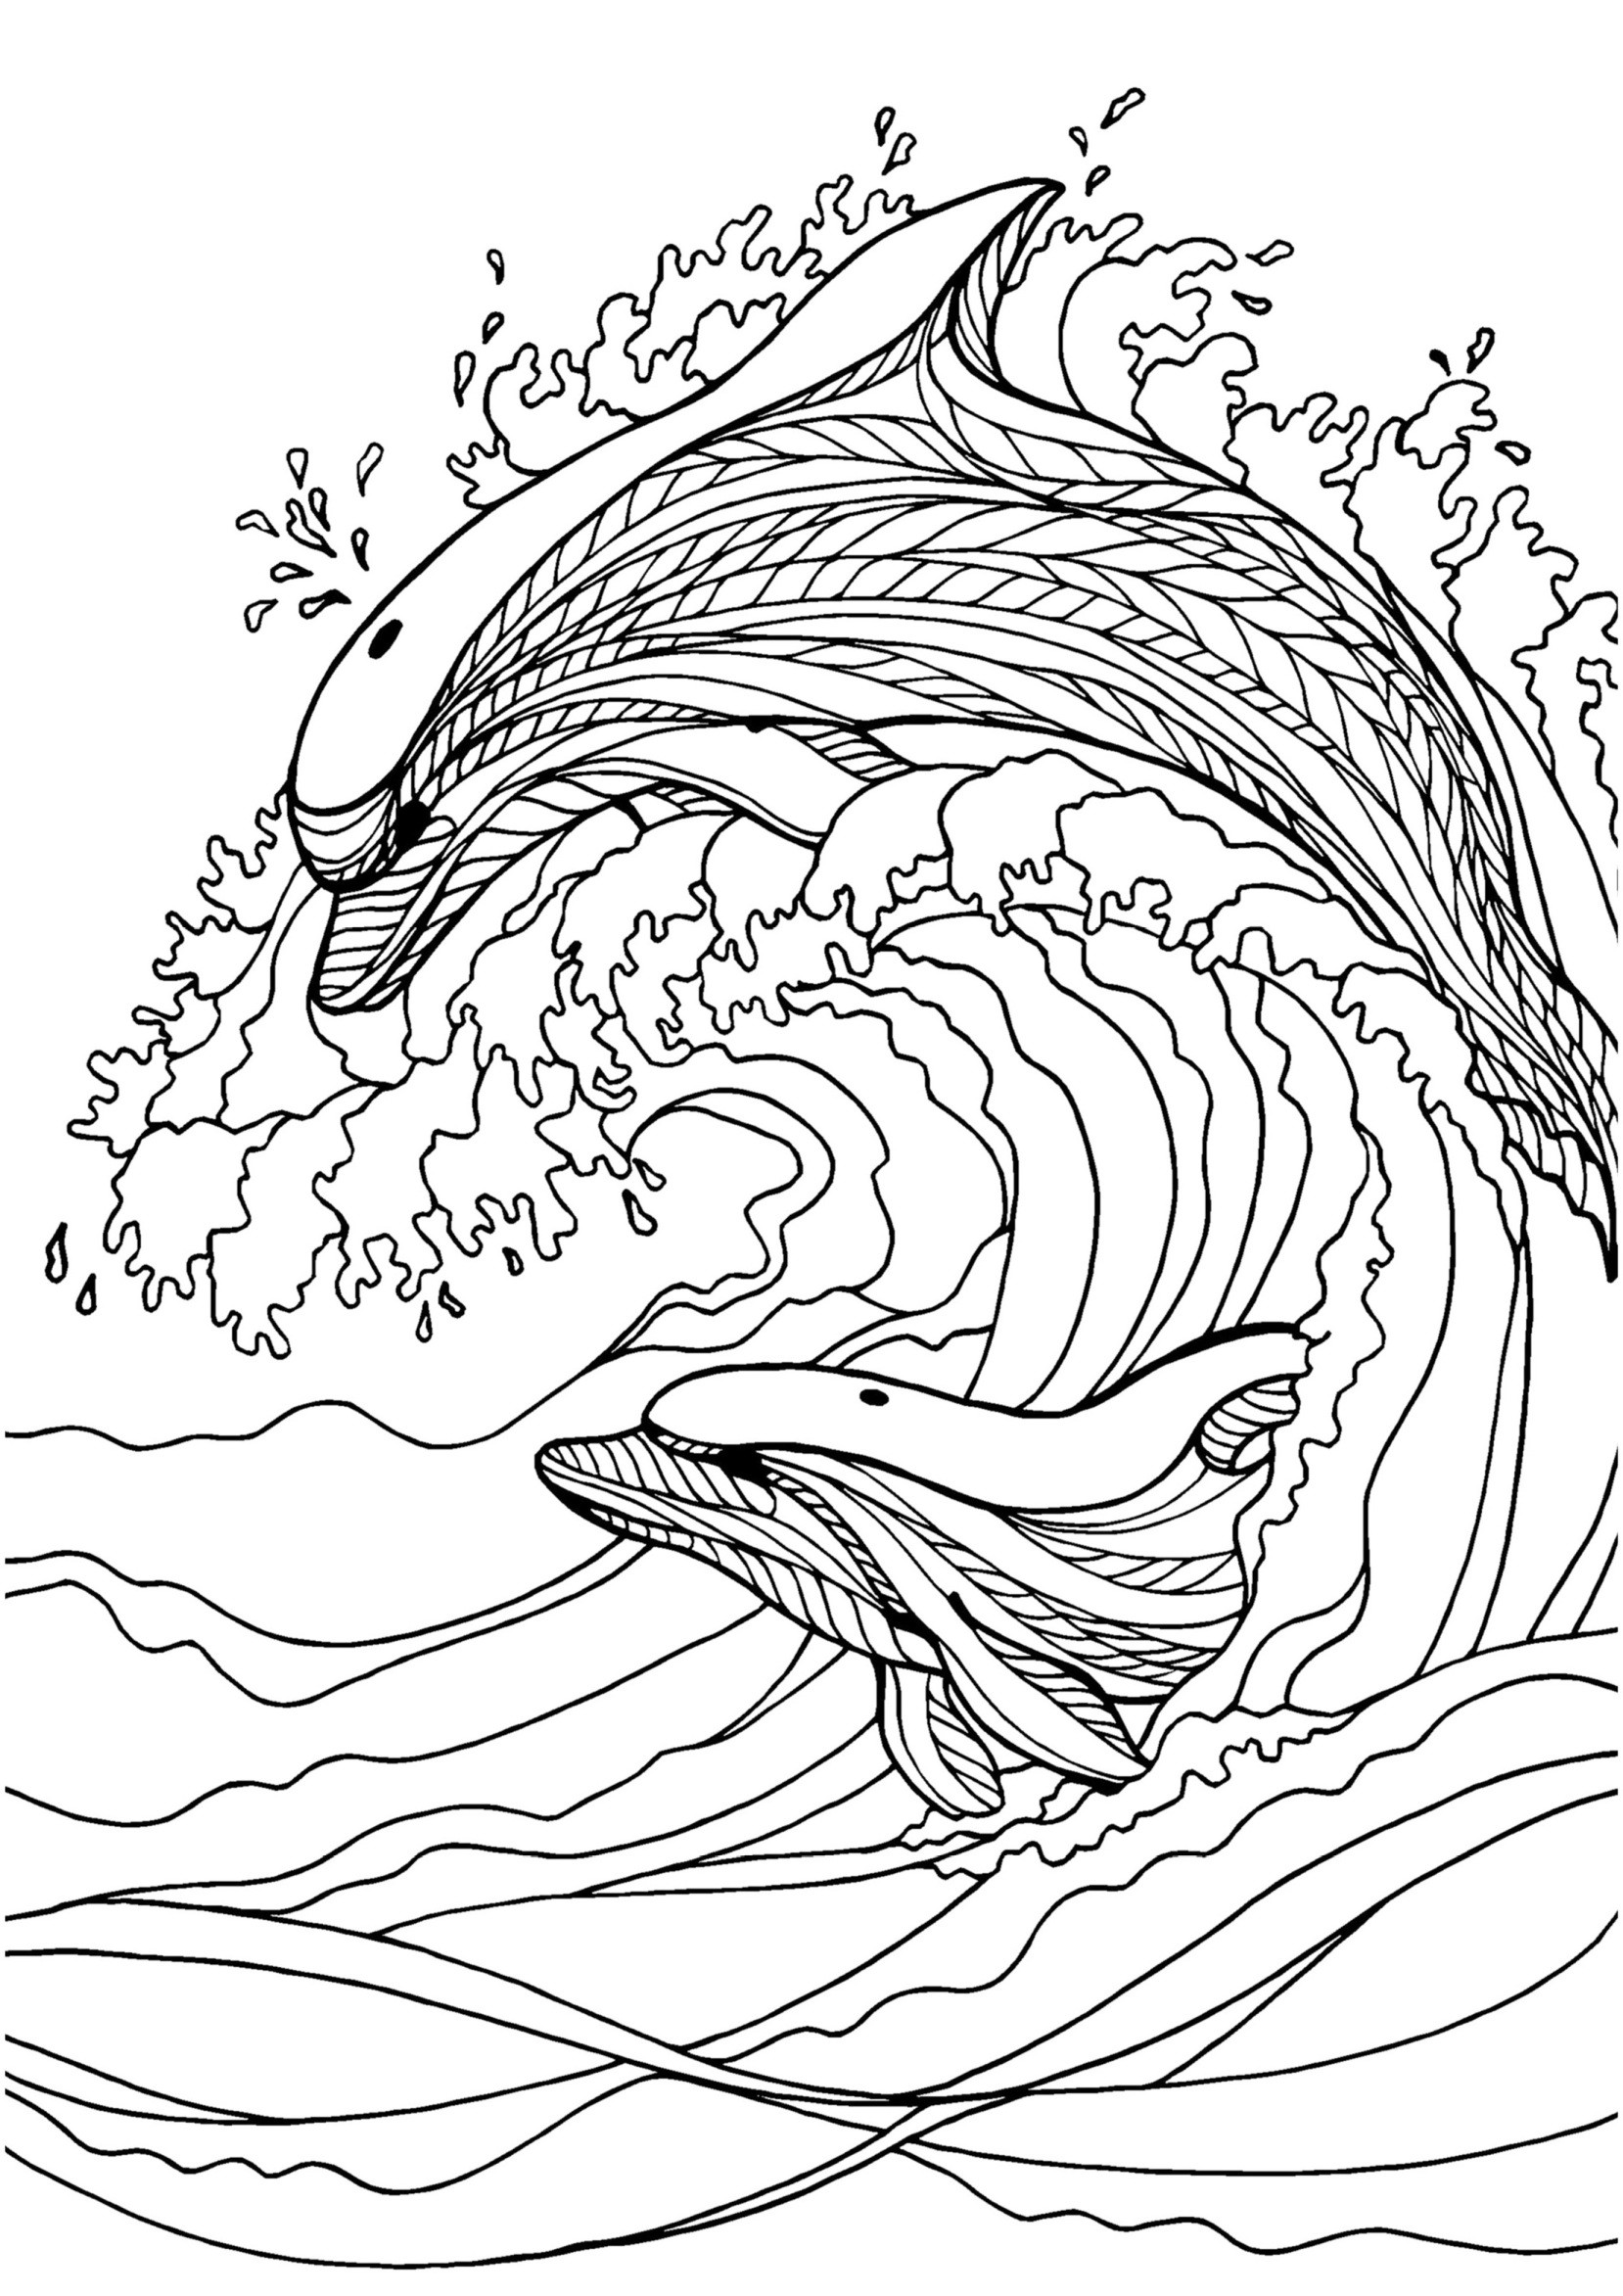 Adult Coloring Pages Dolphin At Getcolorings